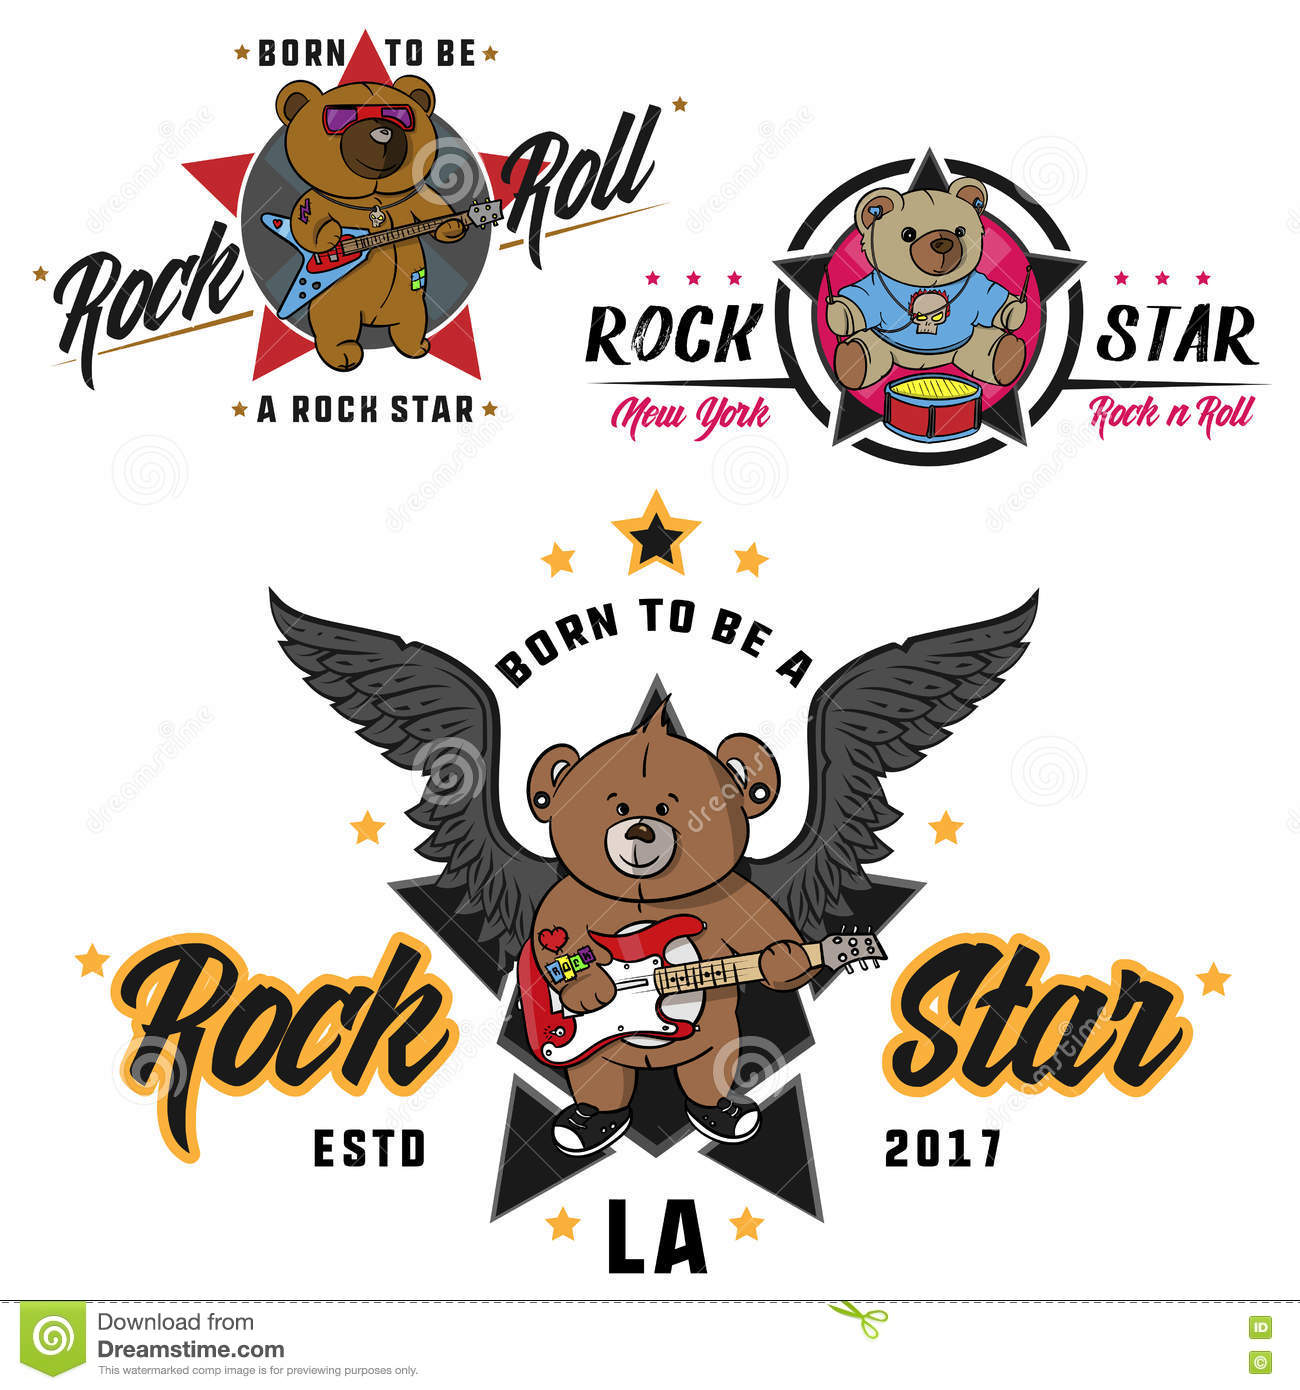 d945f2f15 Rock and roll Teddy bear for children drawn hero, print for t shirts,  stickers and labels, tattoo. Gentle, sleep. Royalty-Free Vector